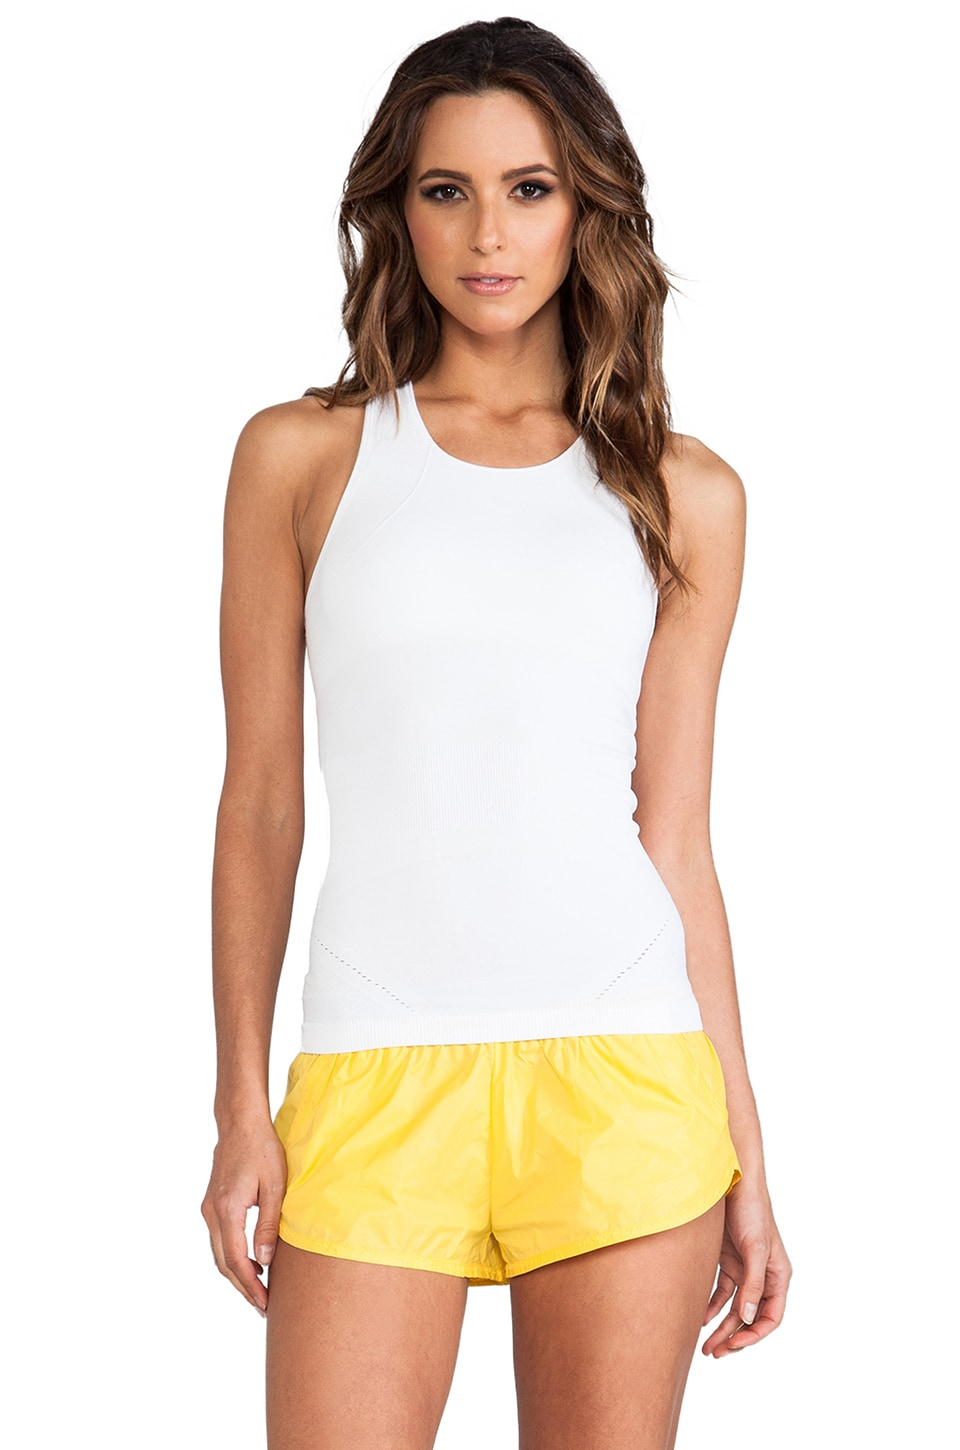 adidas by Stella McCartney YO Seamless Tank in White